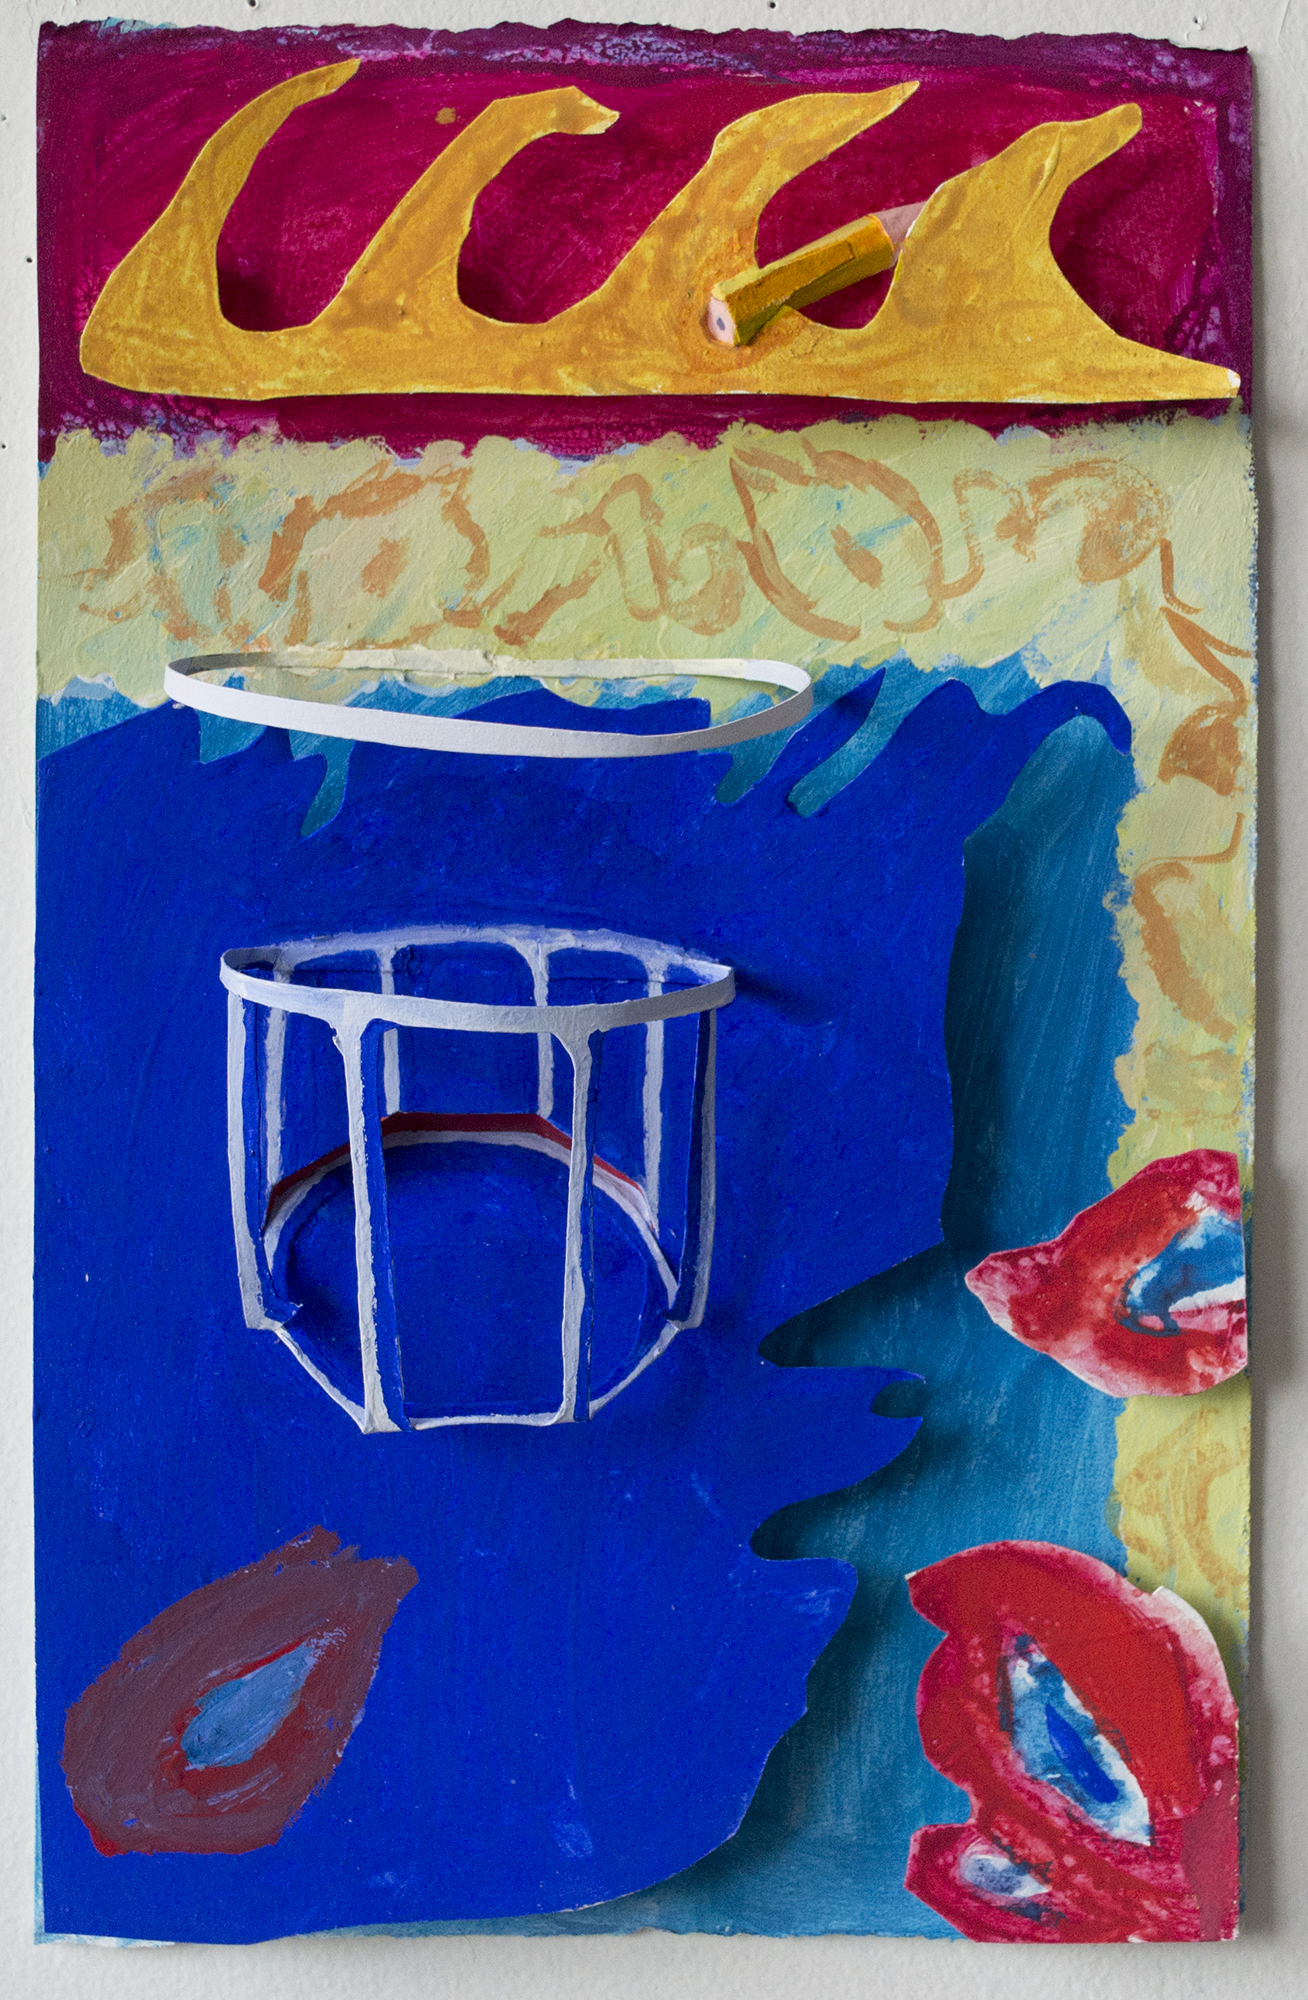 Still Life with Glass and Pencil, 2016, gouache on paper construction, 12 x 7.5 x 3.5 inches